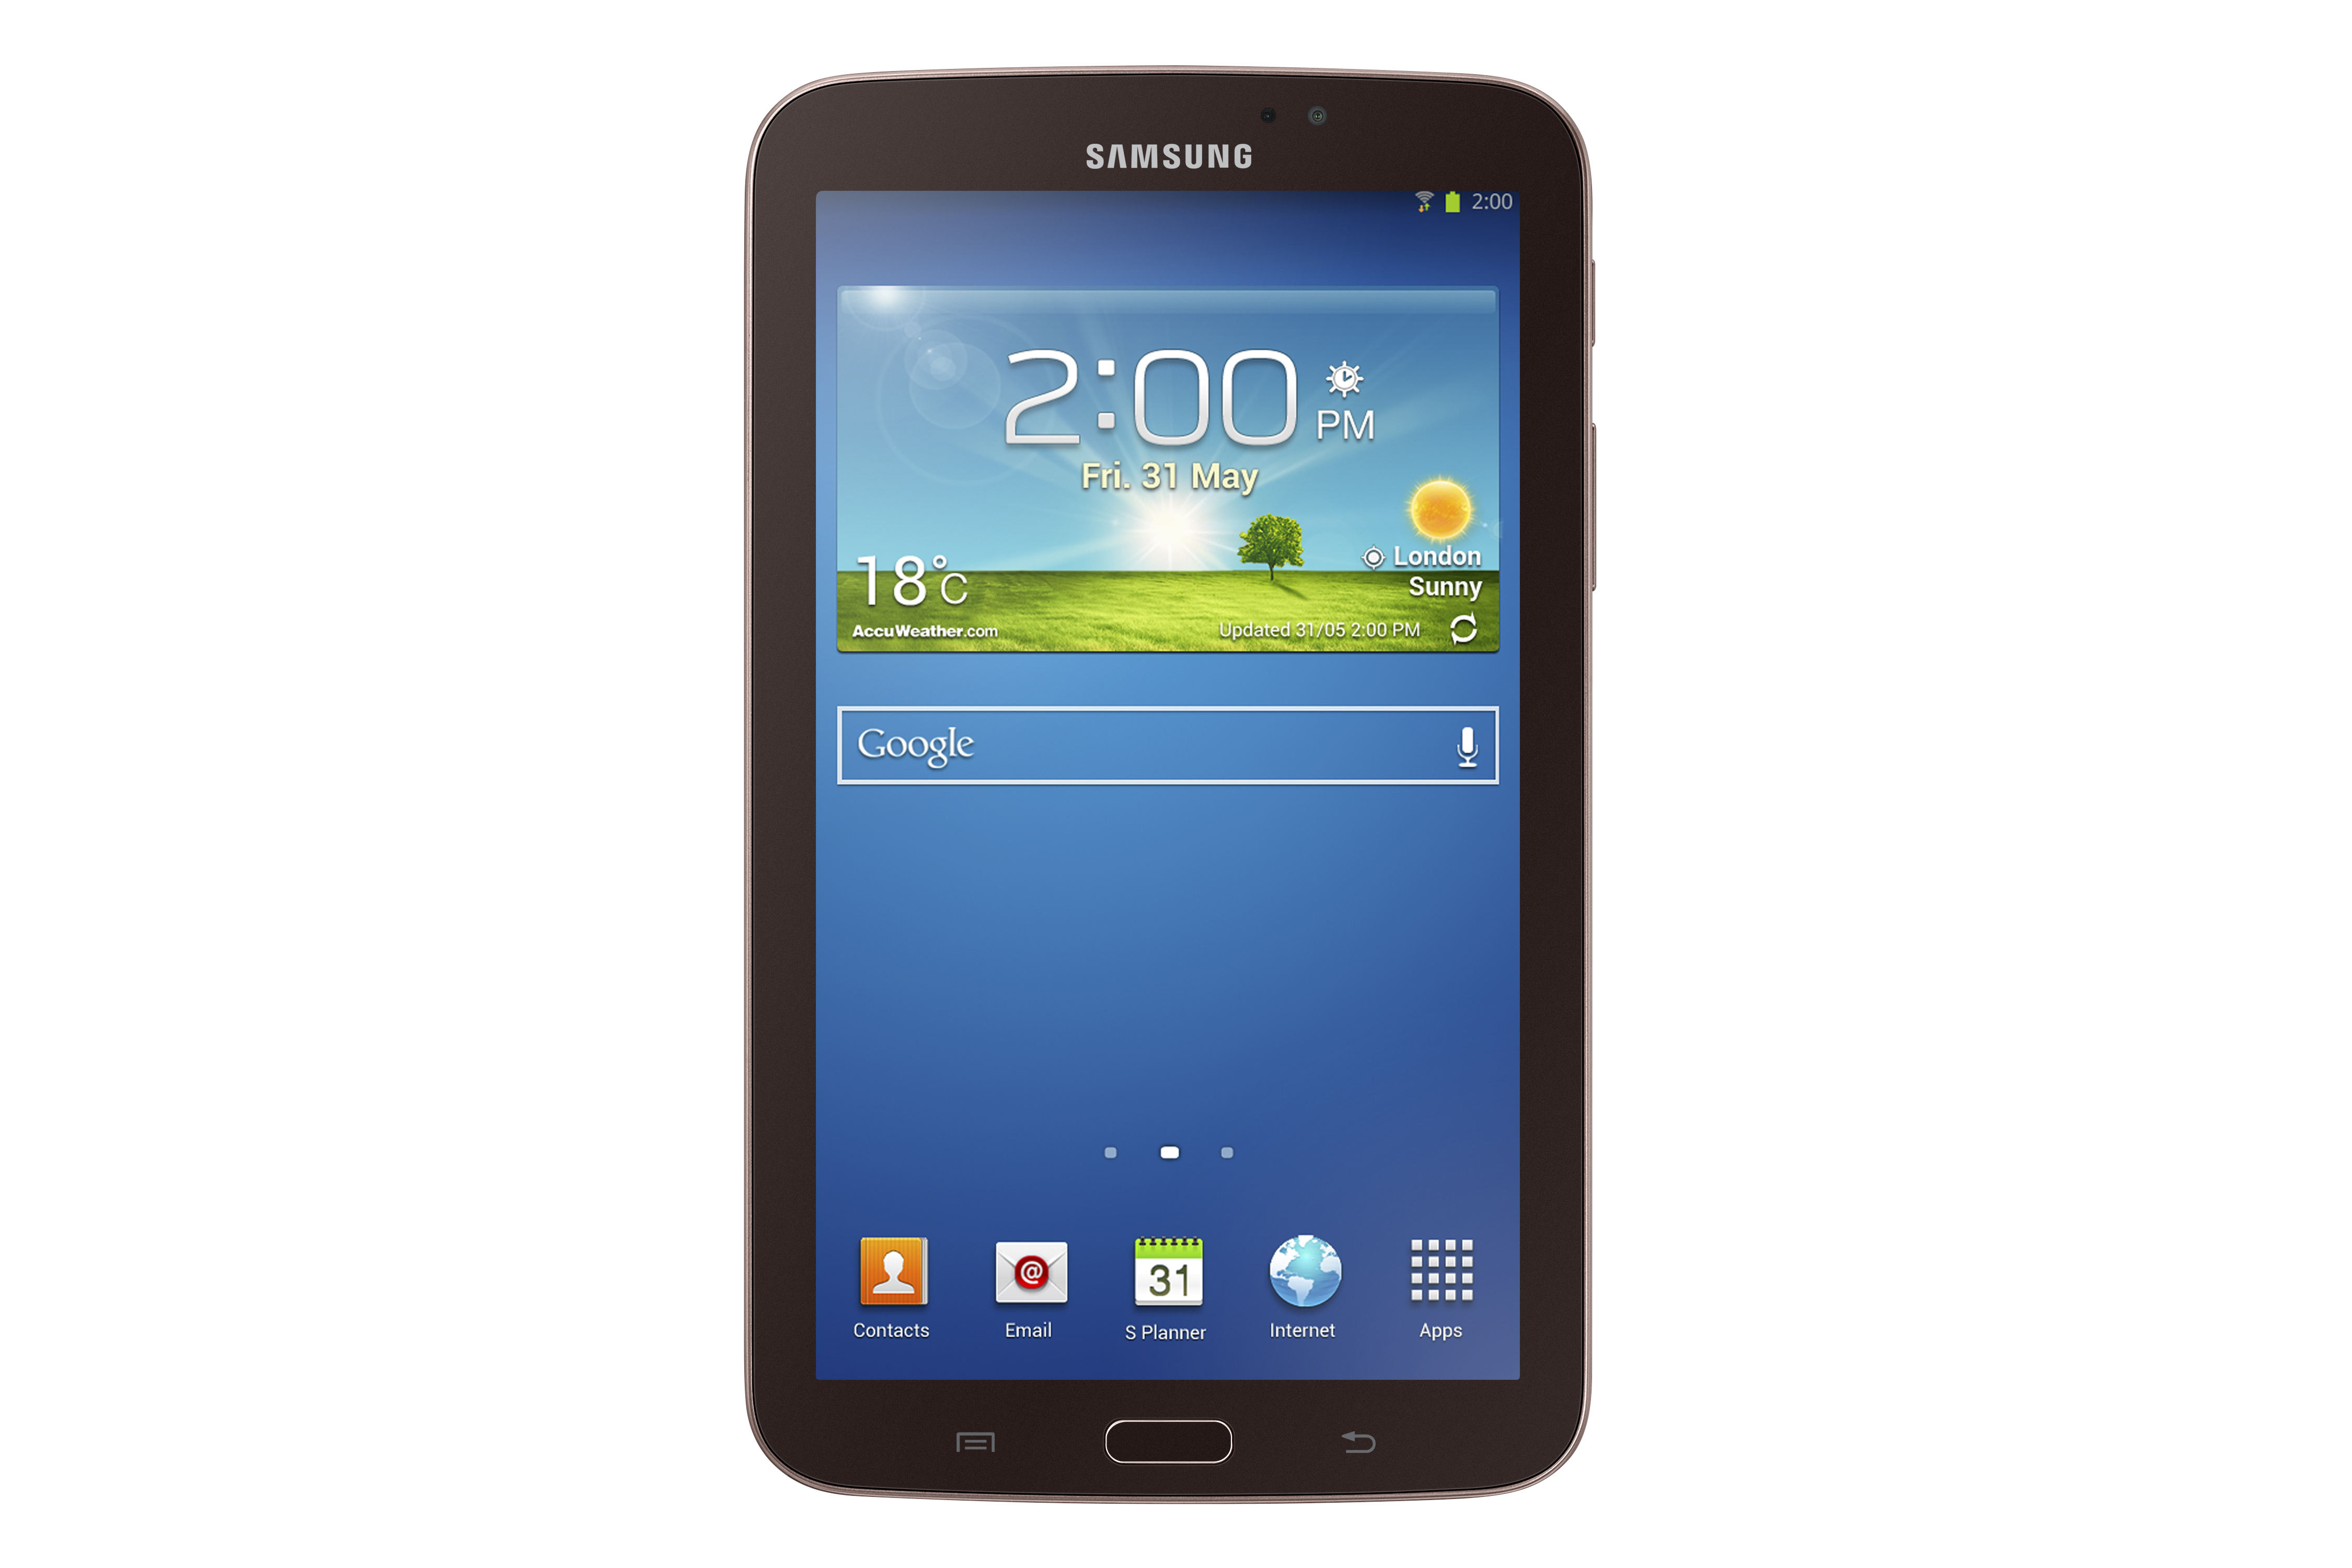 tablets. The new Galaxy Tab 3 comes in 7, 8 and 10.1-inch sizes to